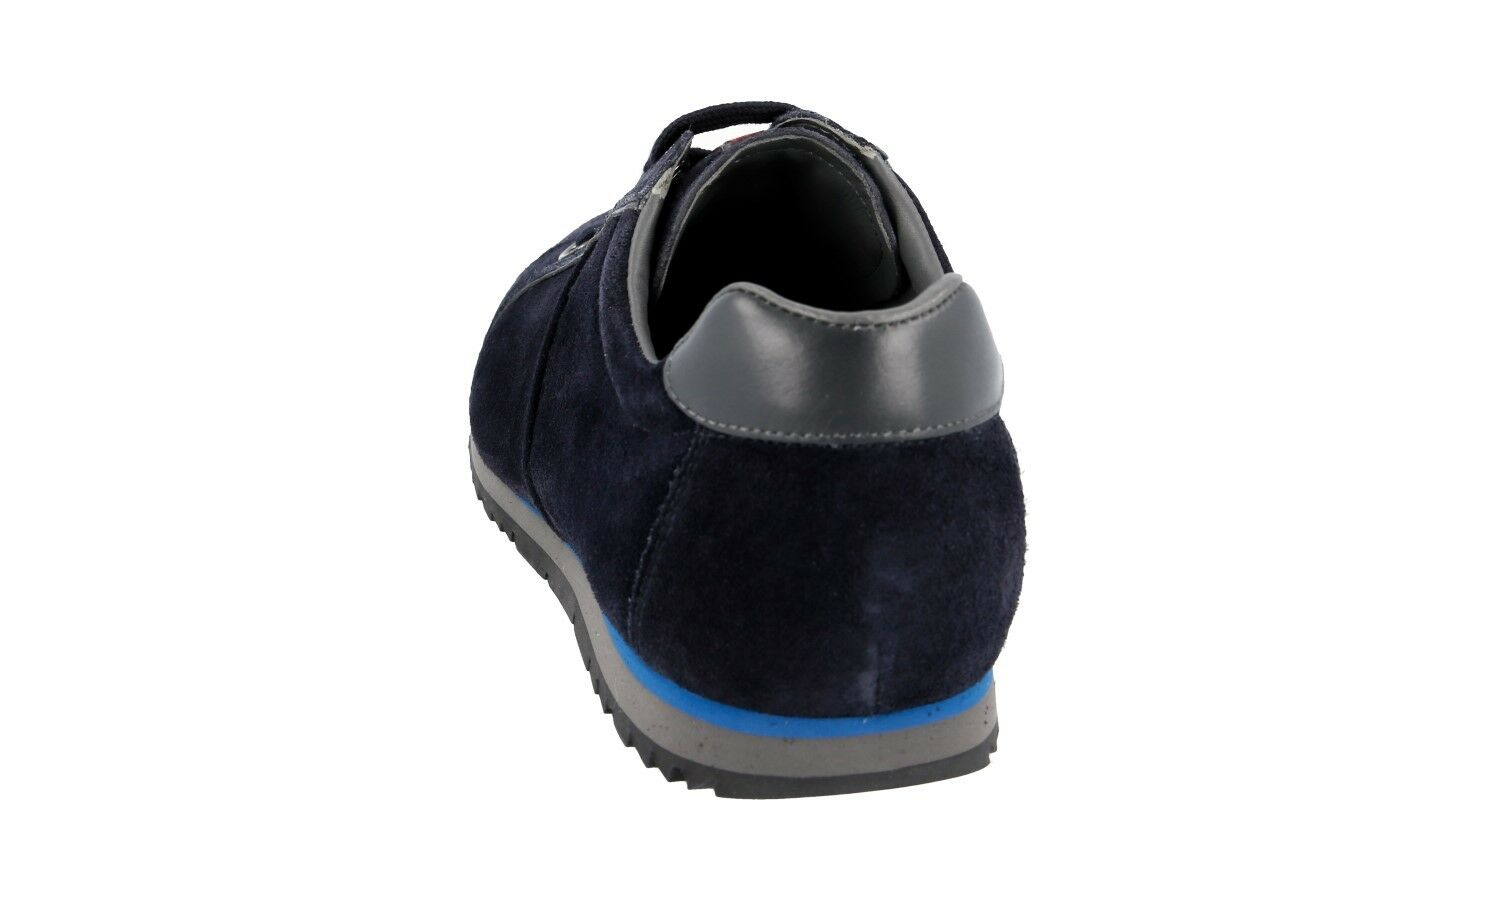 AUTH LUXURY PRADA SNEAKERS SHOES 4E2719 BLUE SUEDE NEW NEW NEW US 6.5 EU 39,5 40 b83f55